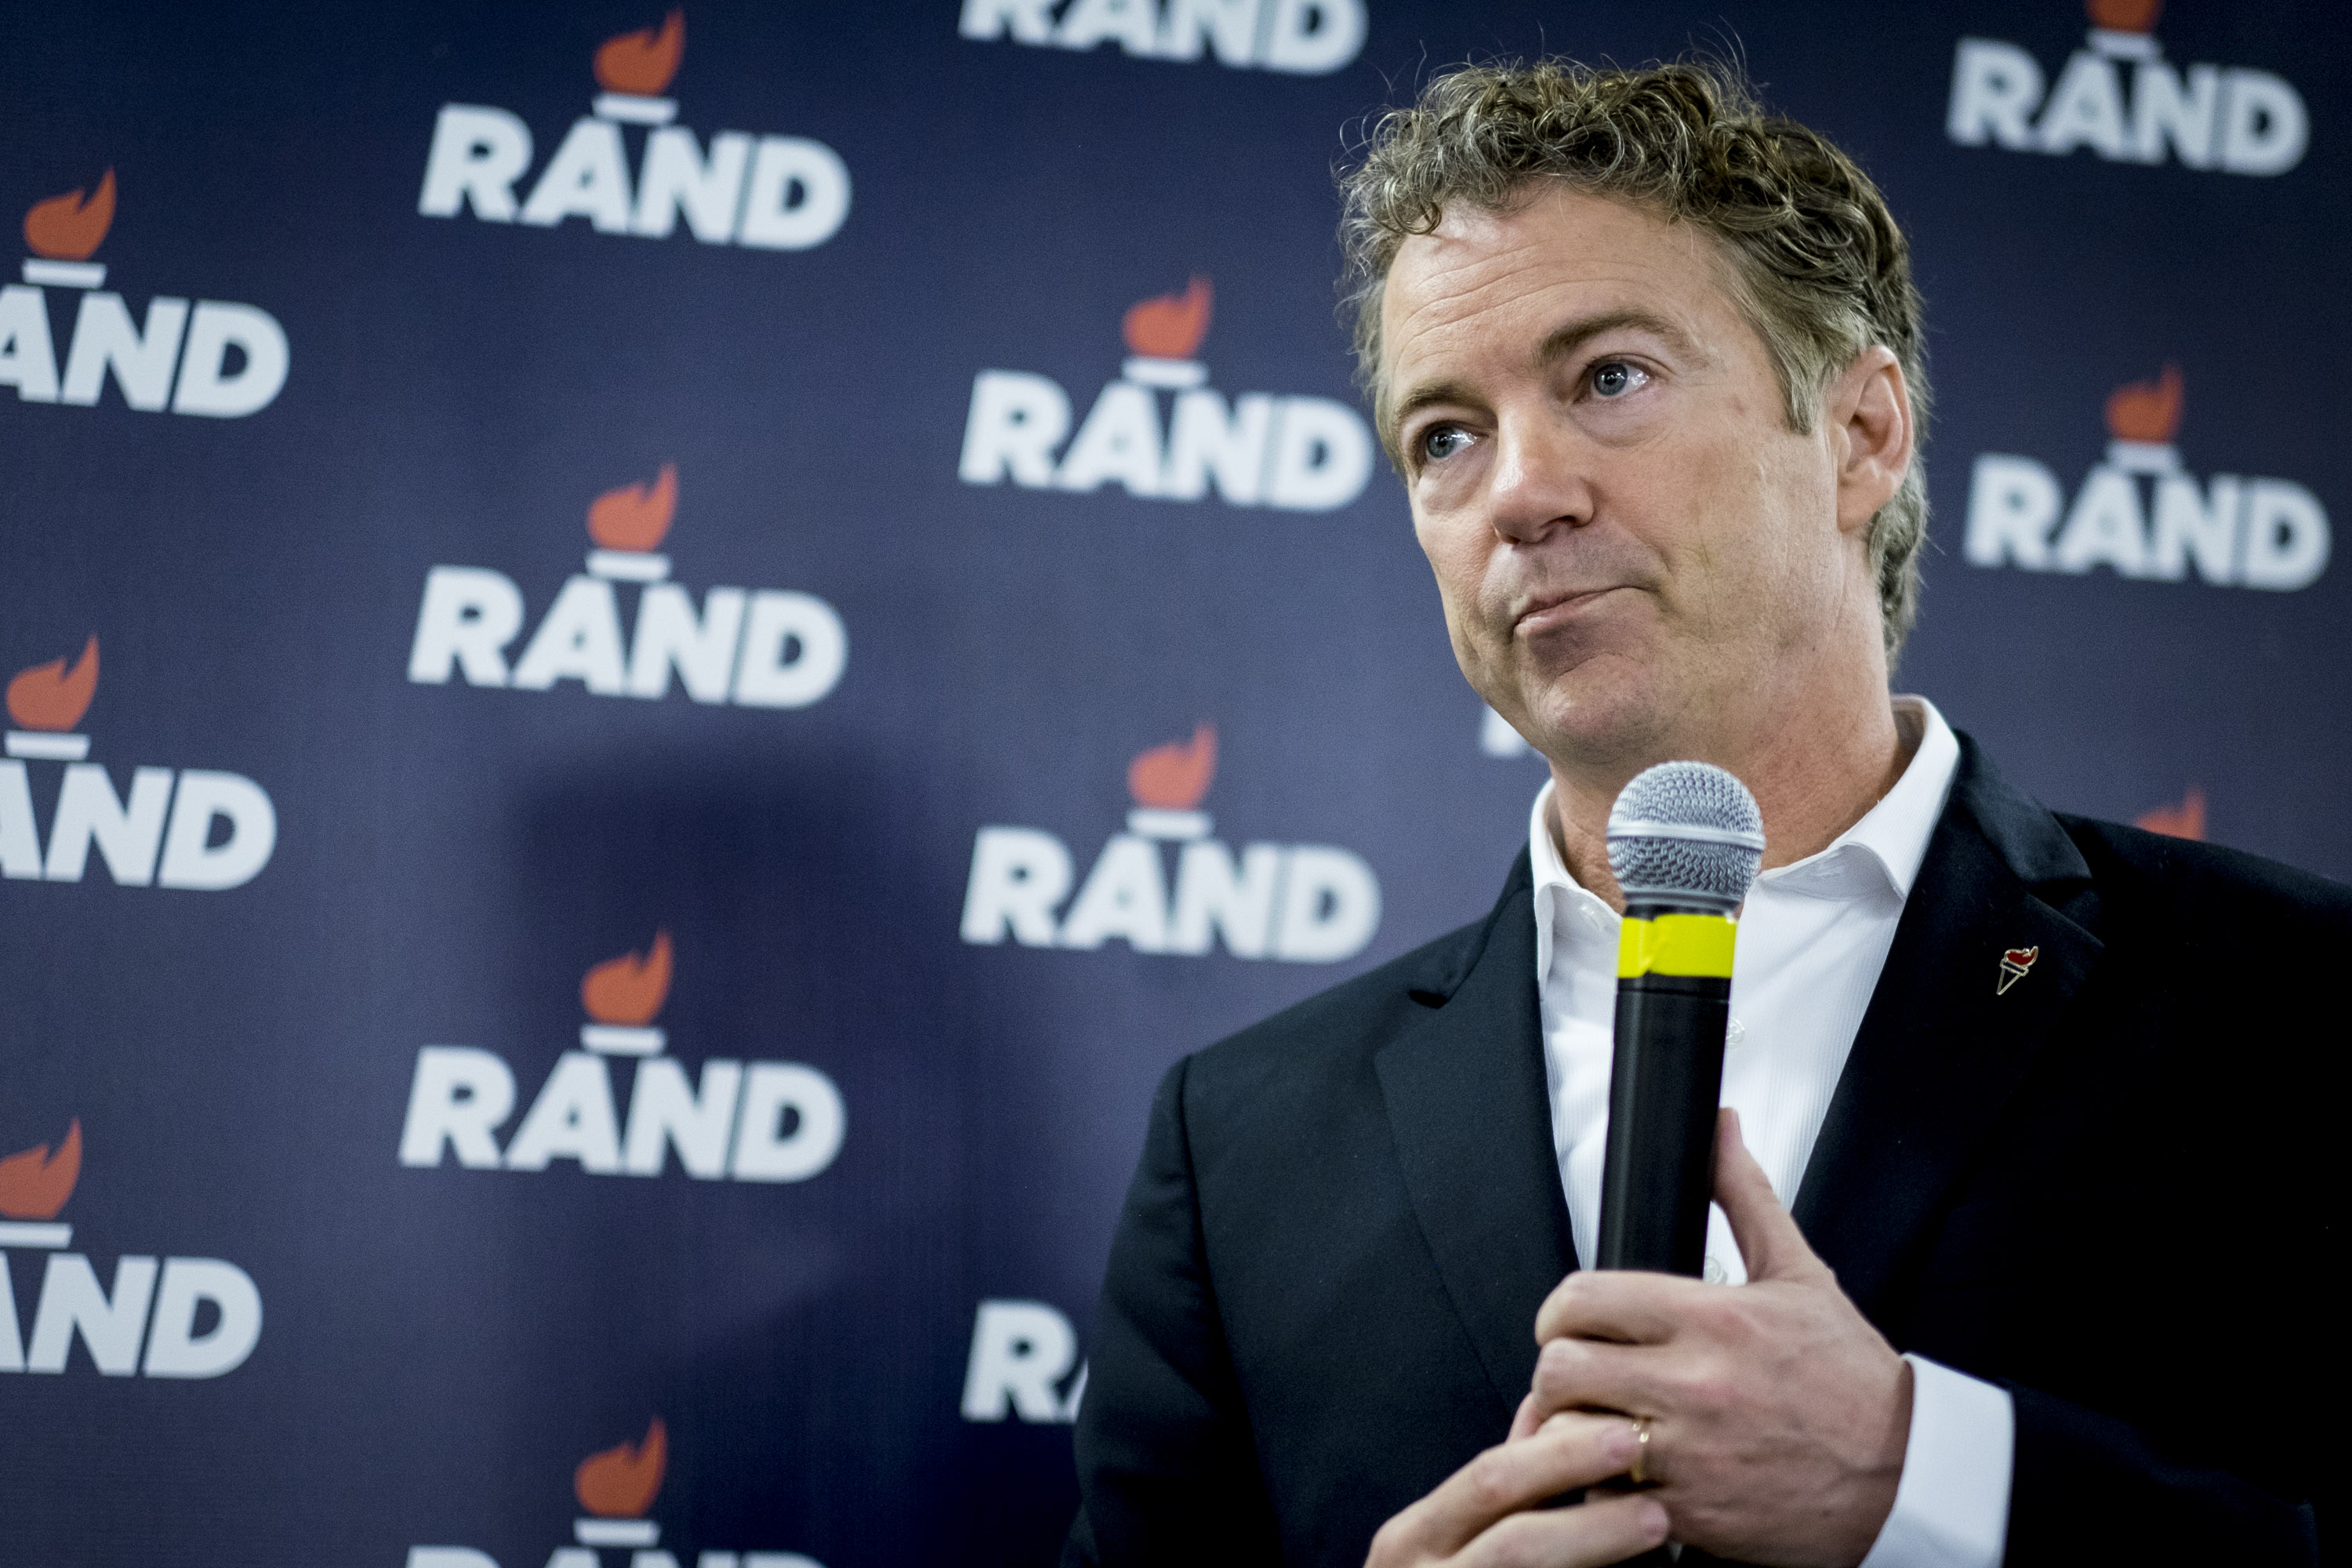 Rand Paul Des Moines, Rand Paul Iowa, Rand Paul 2016 campaign